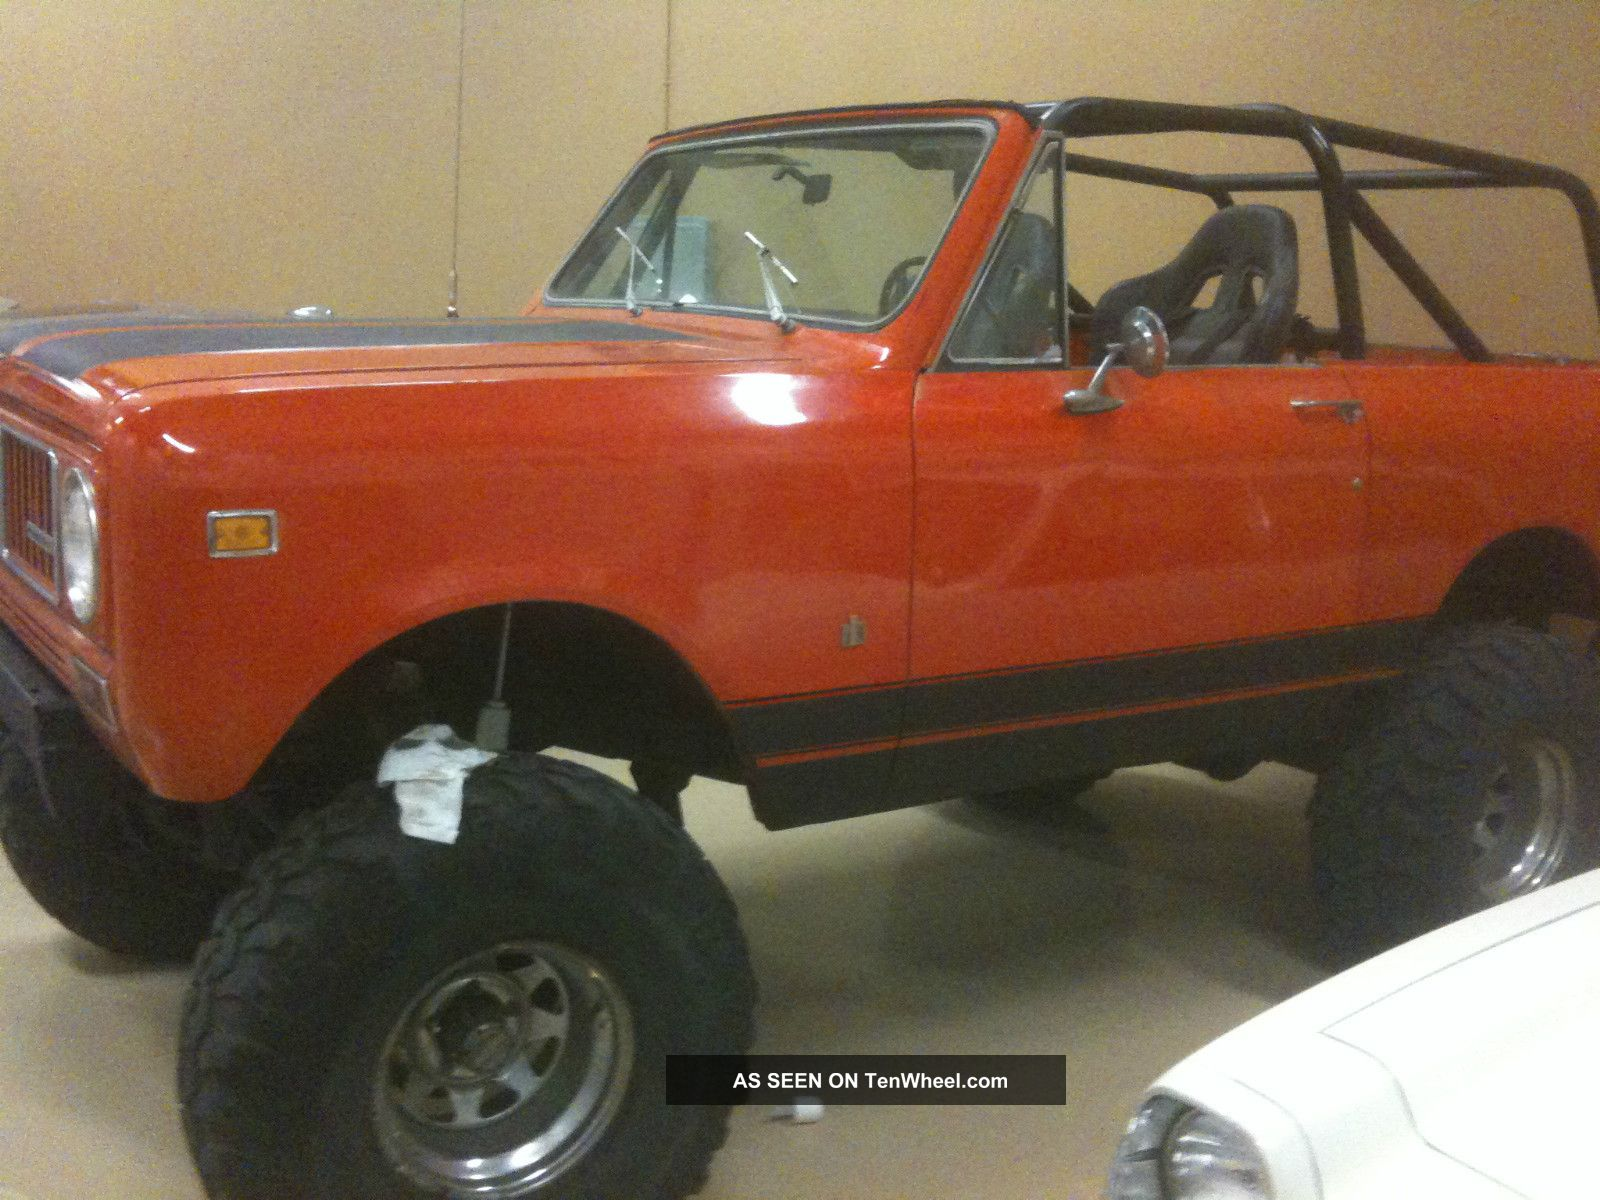 1973 Scout Ii 4sp,  4x4, Scout photo